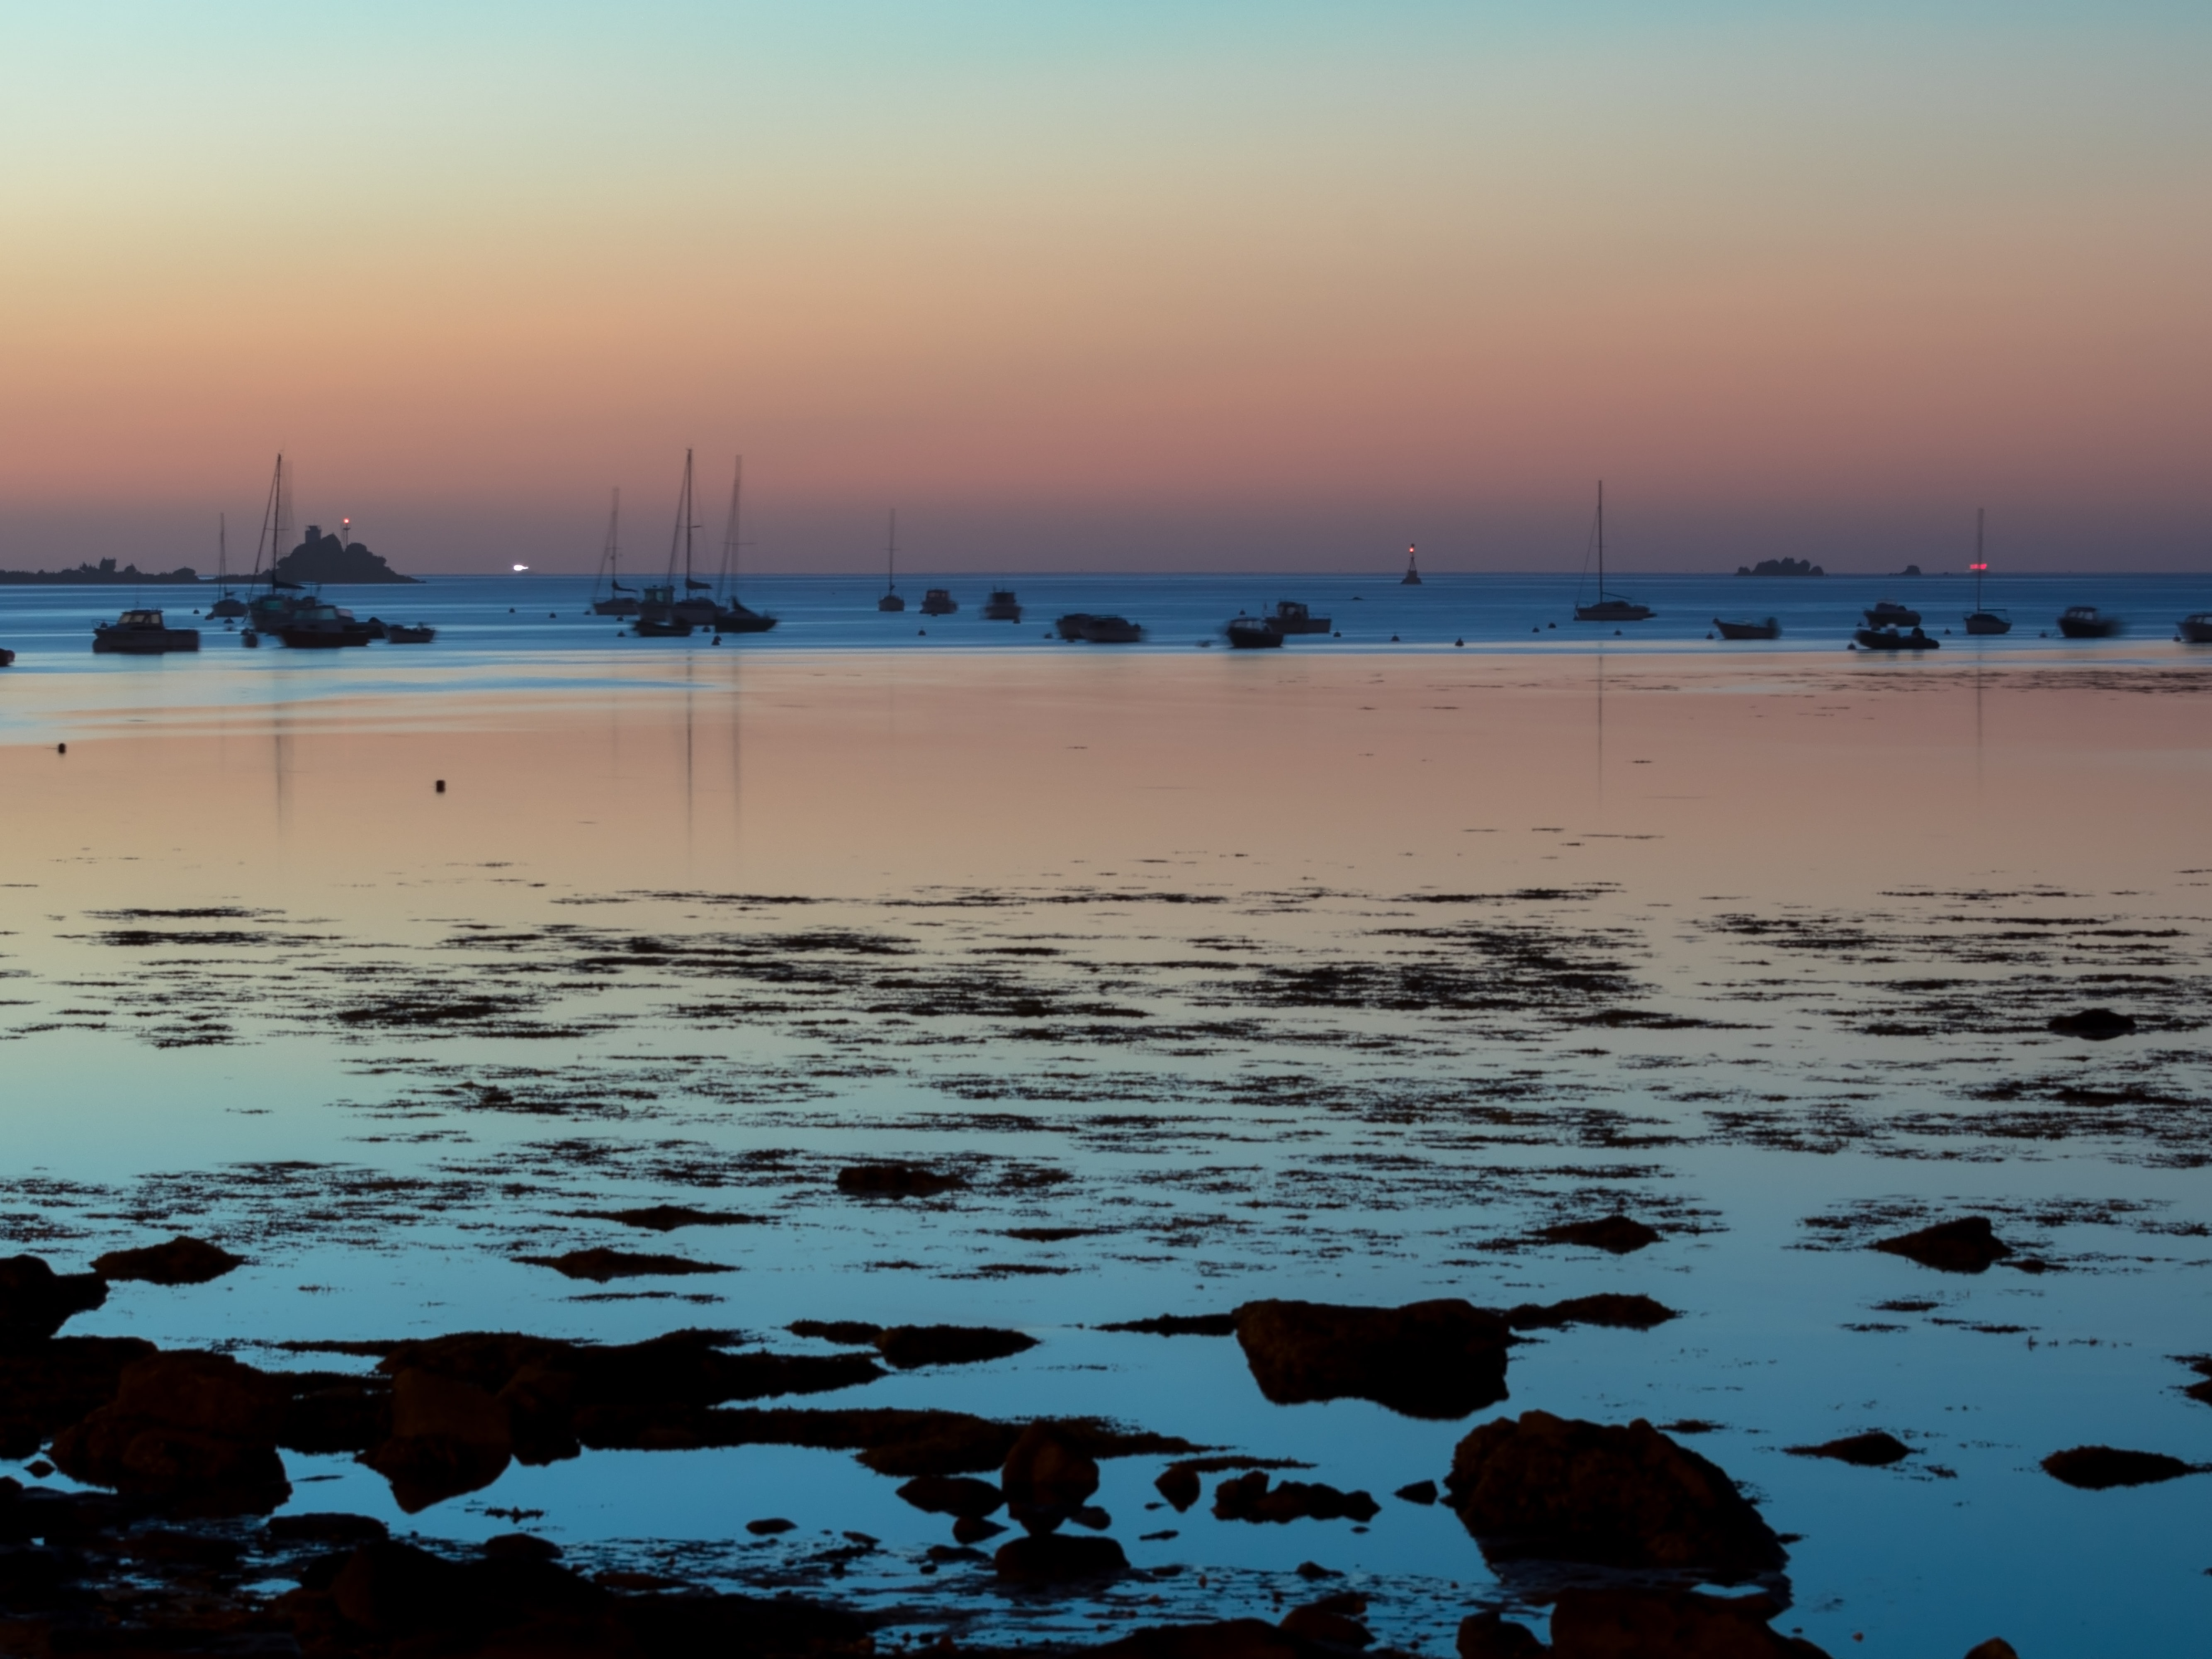 boats on seashore during golden hour